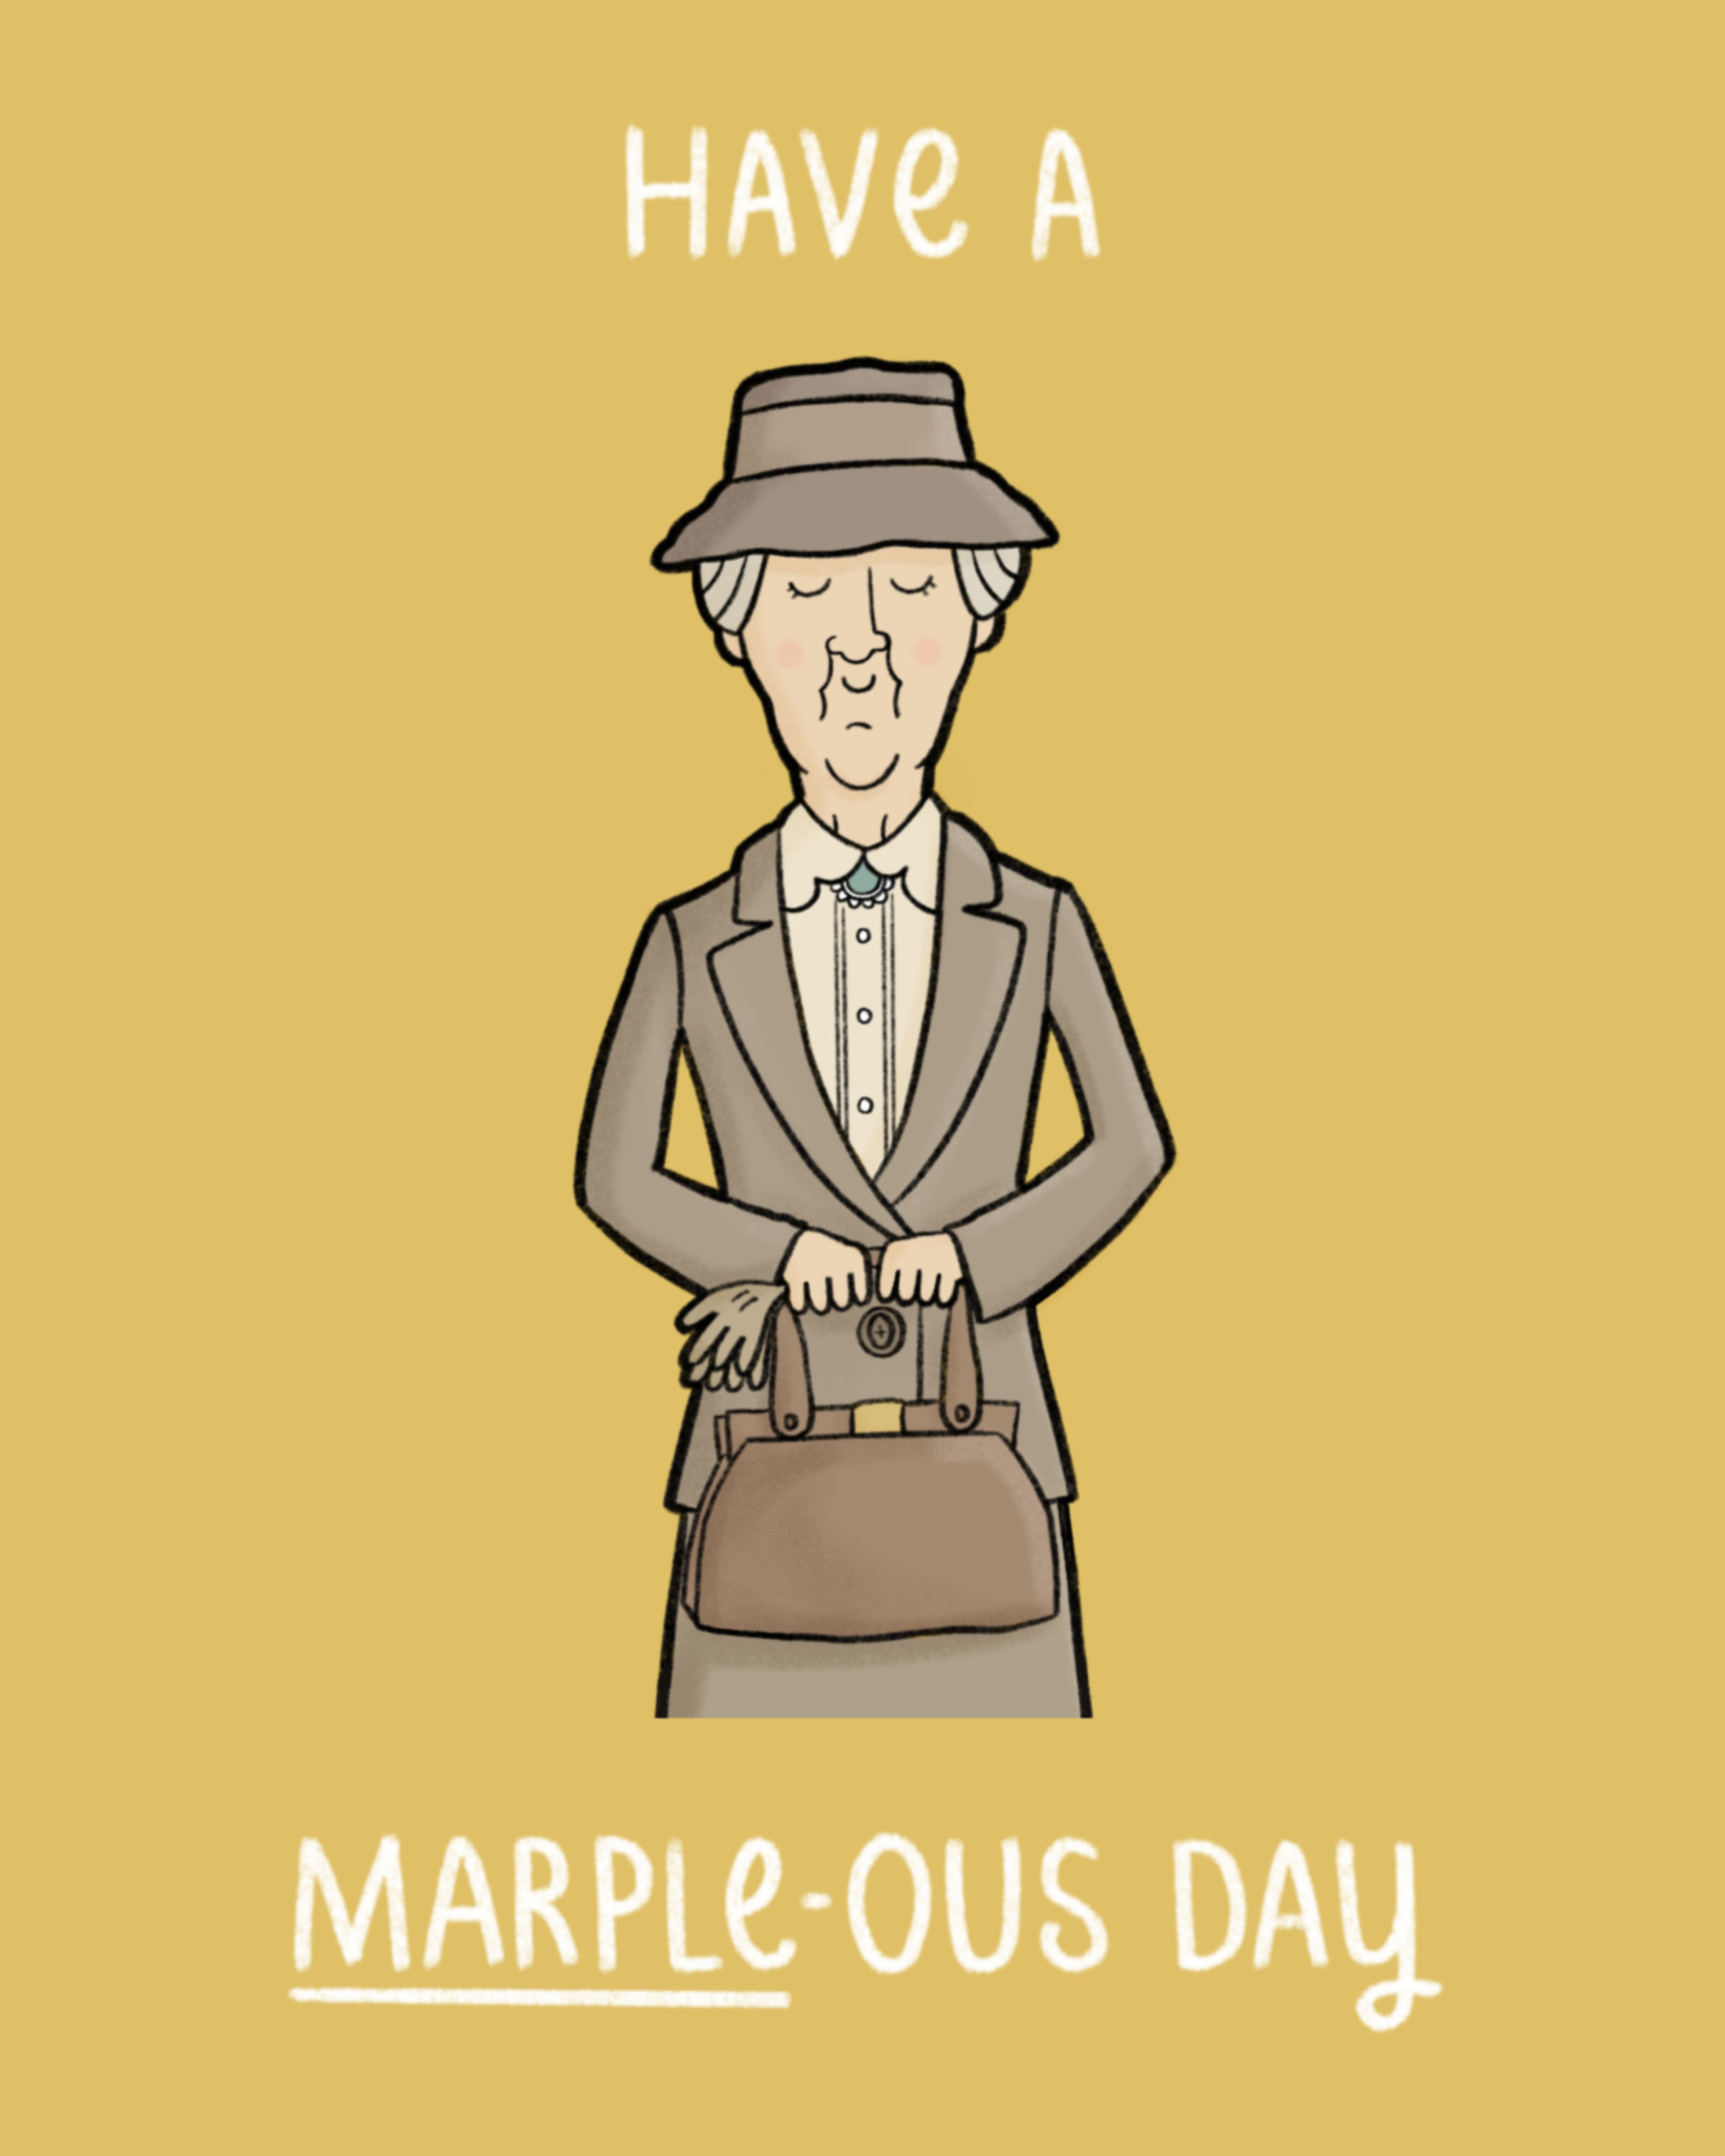 Have a Marple-ous Day